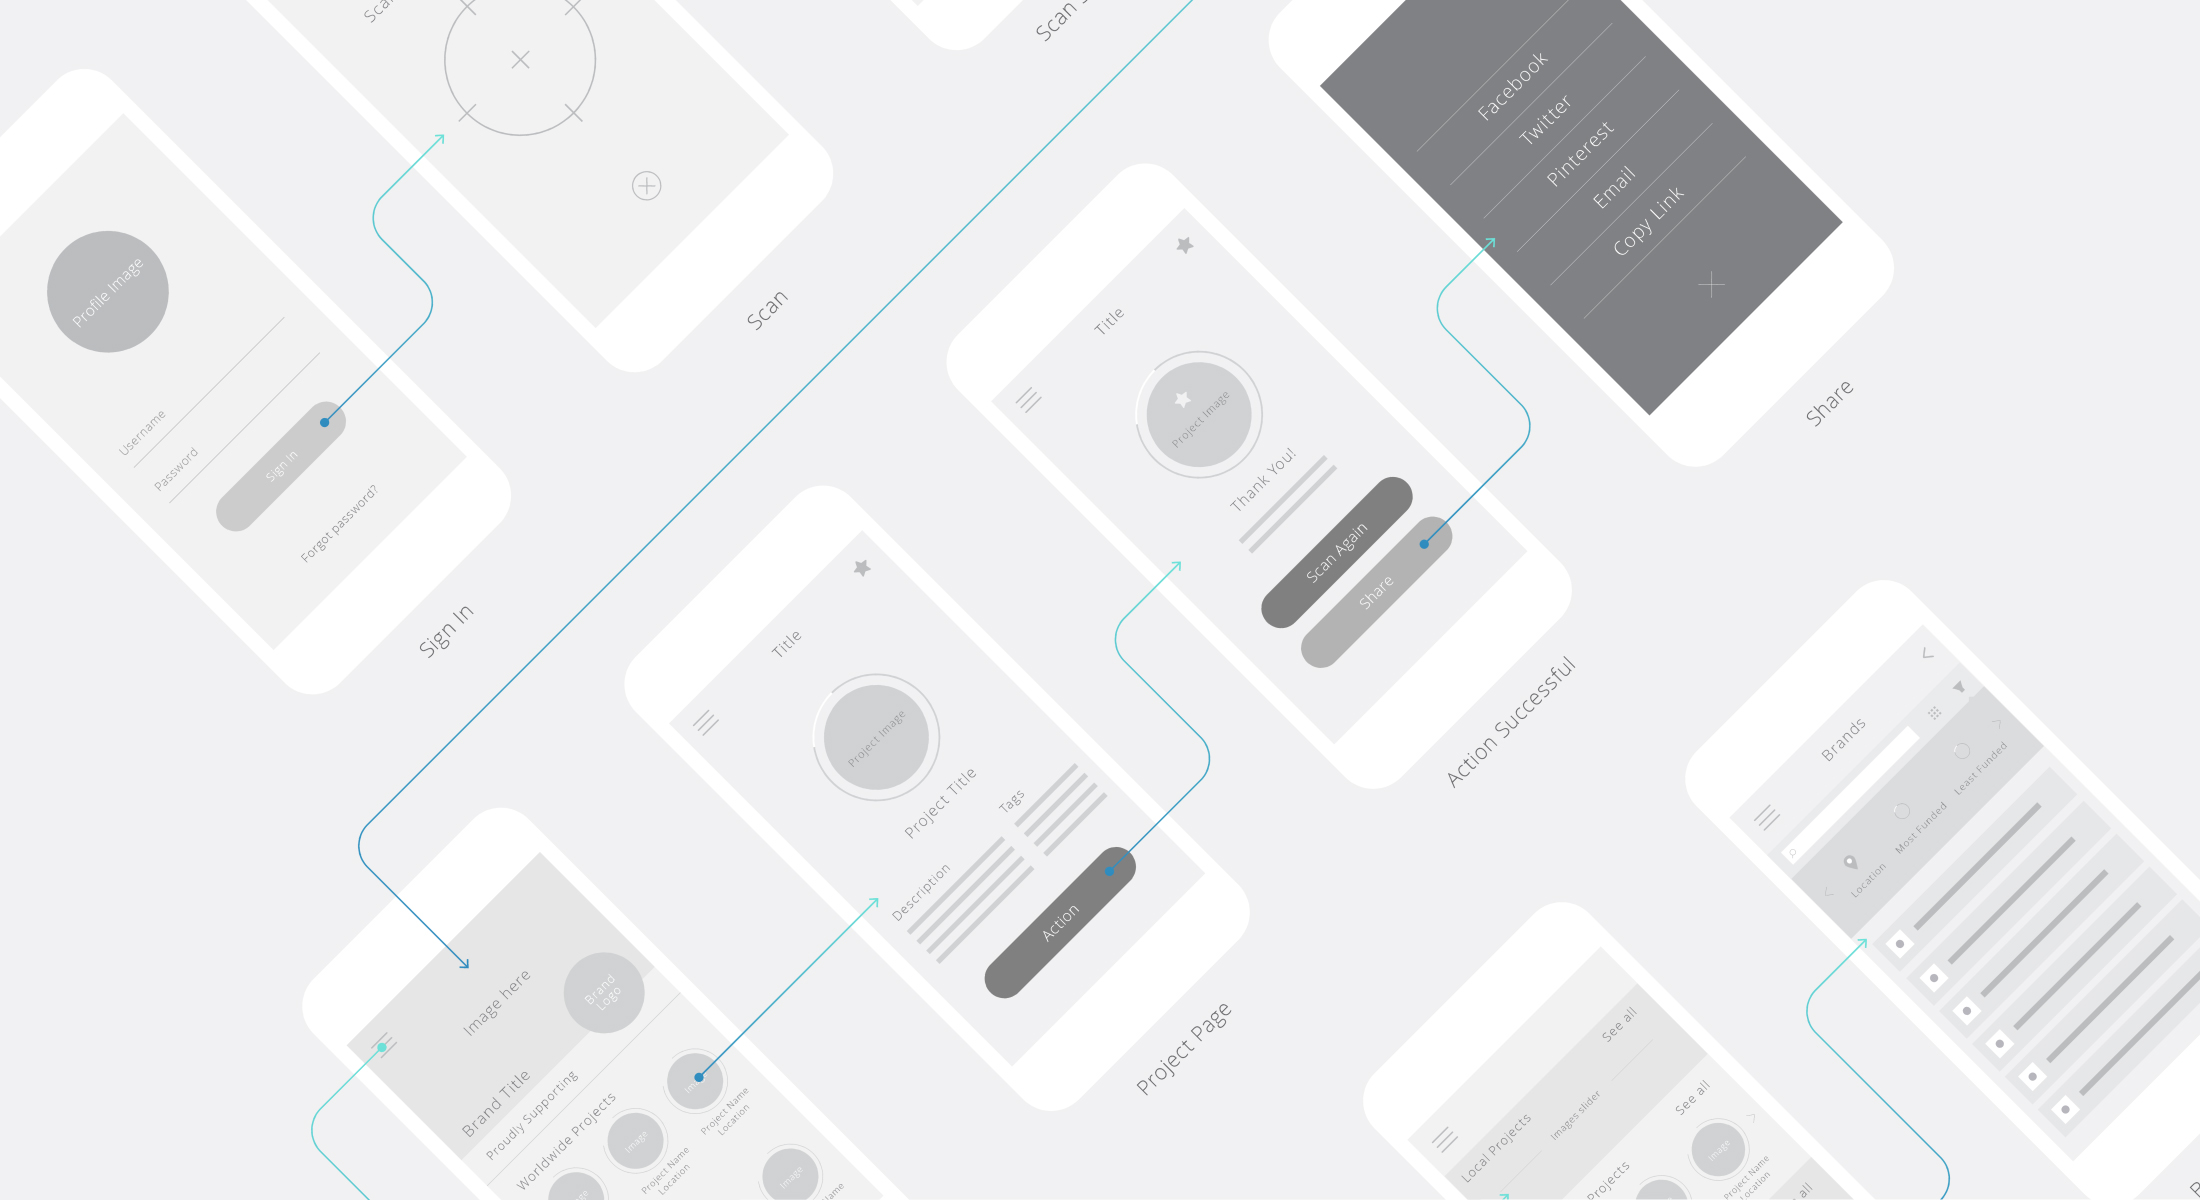 One Step Closer App Design Wireframes